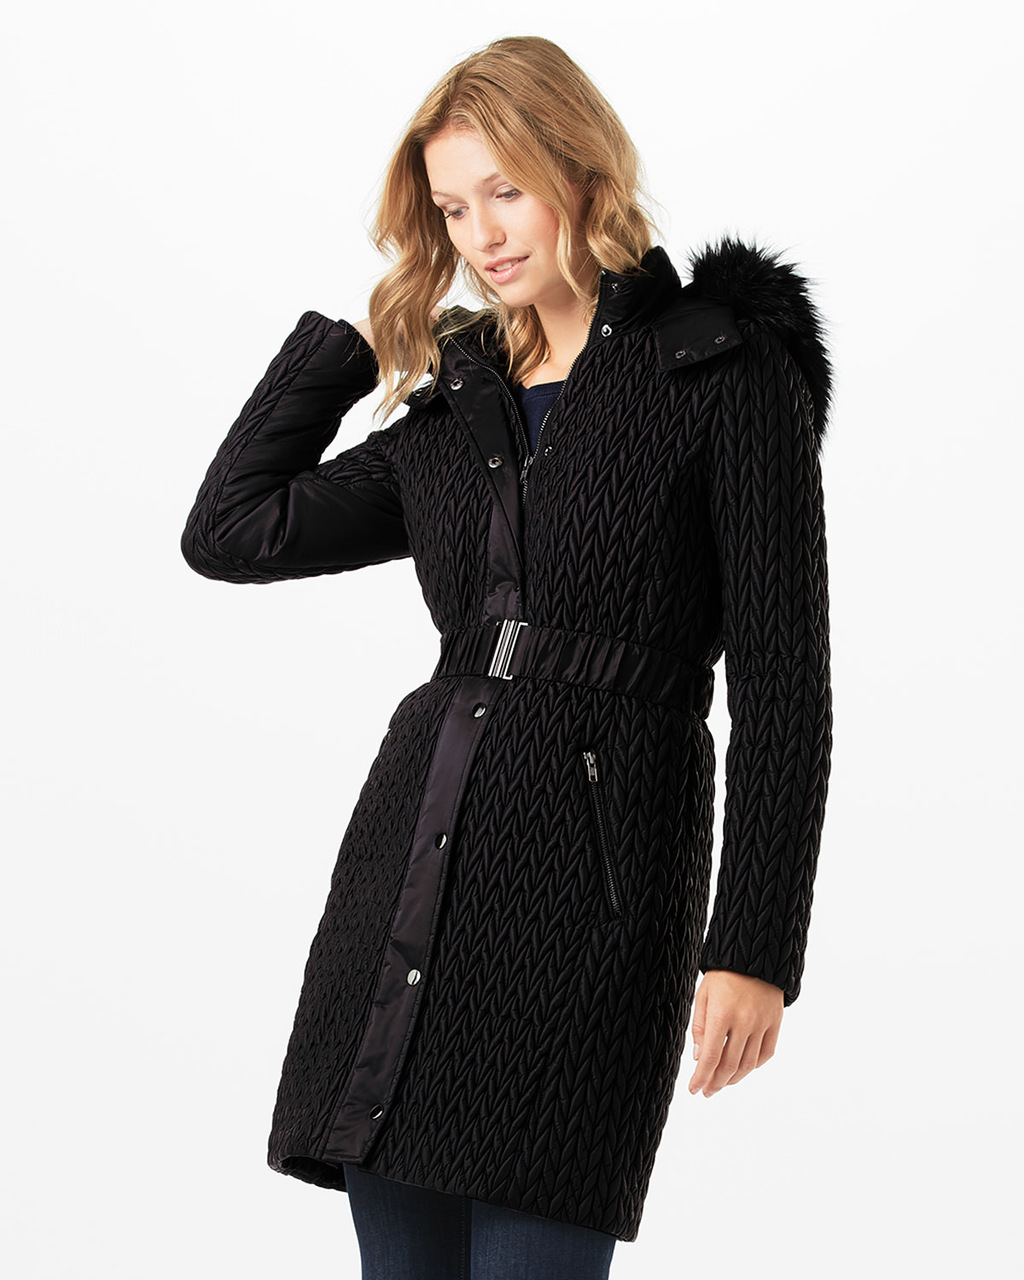 Lucilla Puffer Coat - pattern: plain; style: quilted; back detail: hood; collar: high neck; fit: slim fit; length: mid thigh; predominant colour: black; occasions: casual; fibres: polyester/polyamide - 100%; waist detail: belted waist/tie at waist/drawstring; sleeve length: long sleeve; sleeve style: standard; collar break: high; pattern type: fabric; texture group: other - bulky/heavy; embellishment: fur; season: a/w 2016; wardrobe: highlight; embellishment location: neck